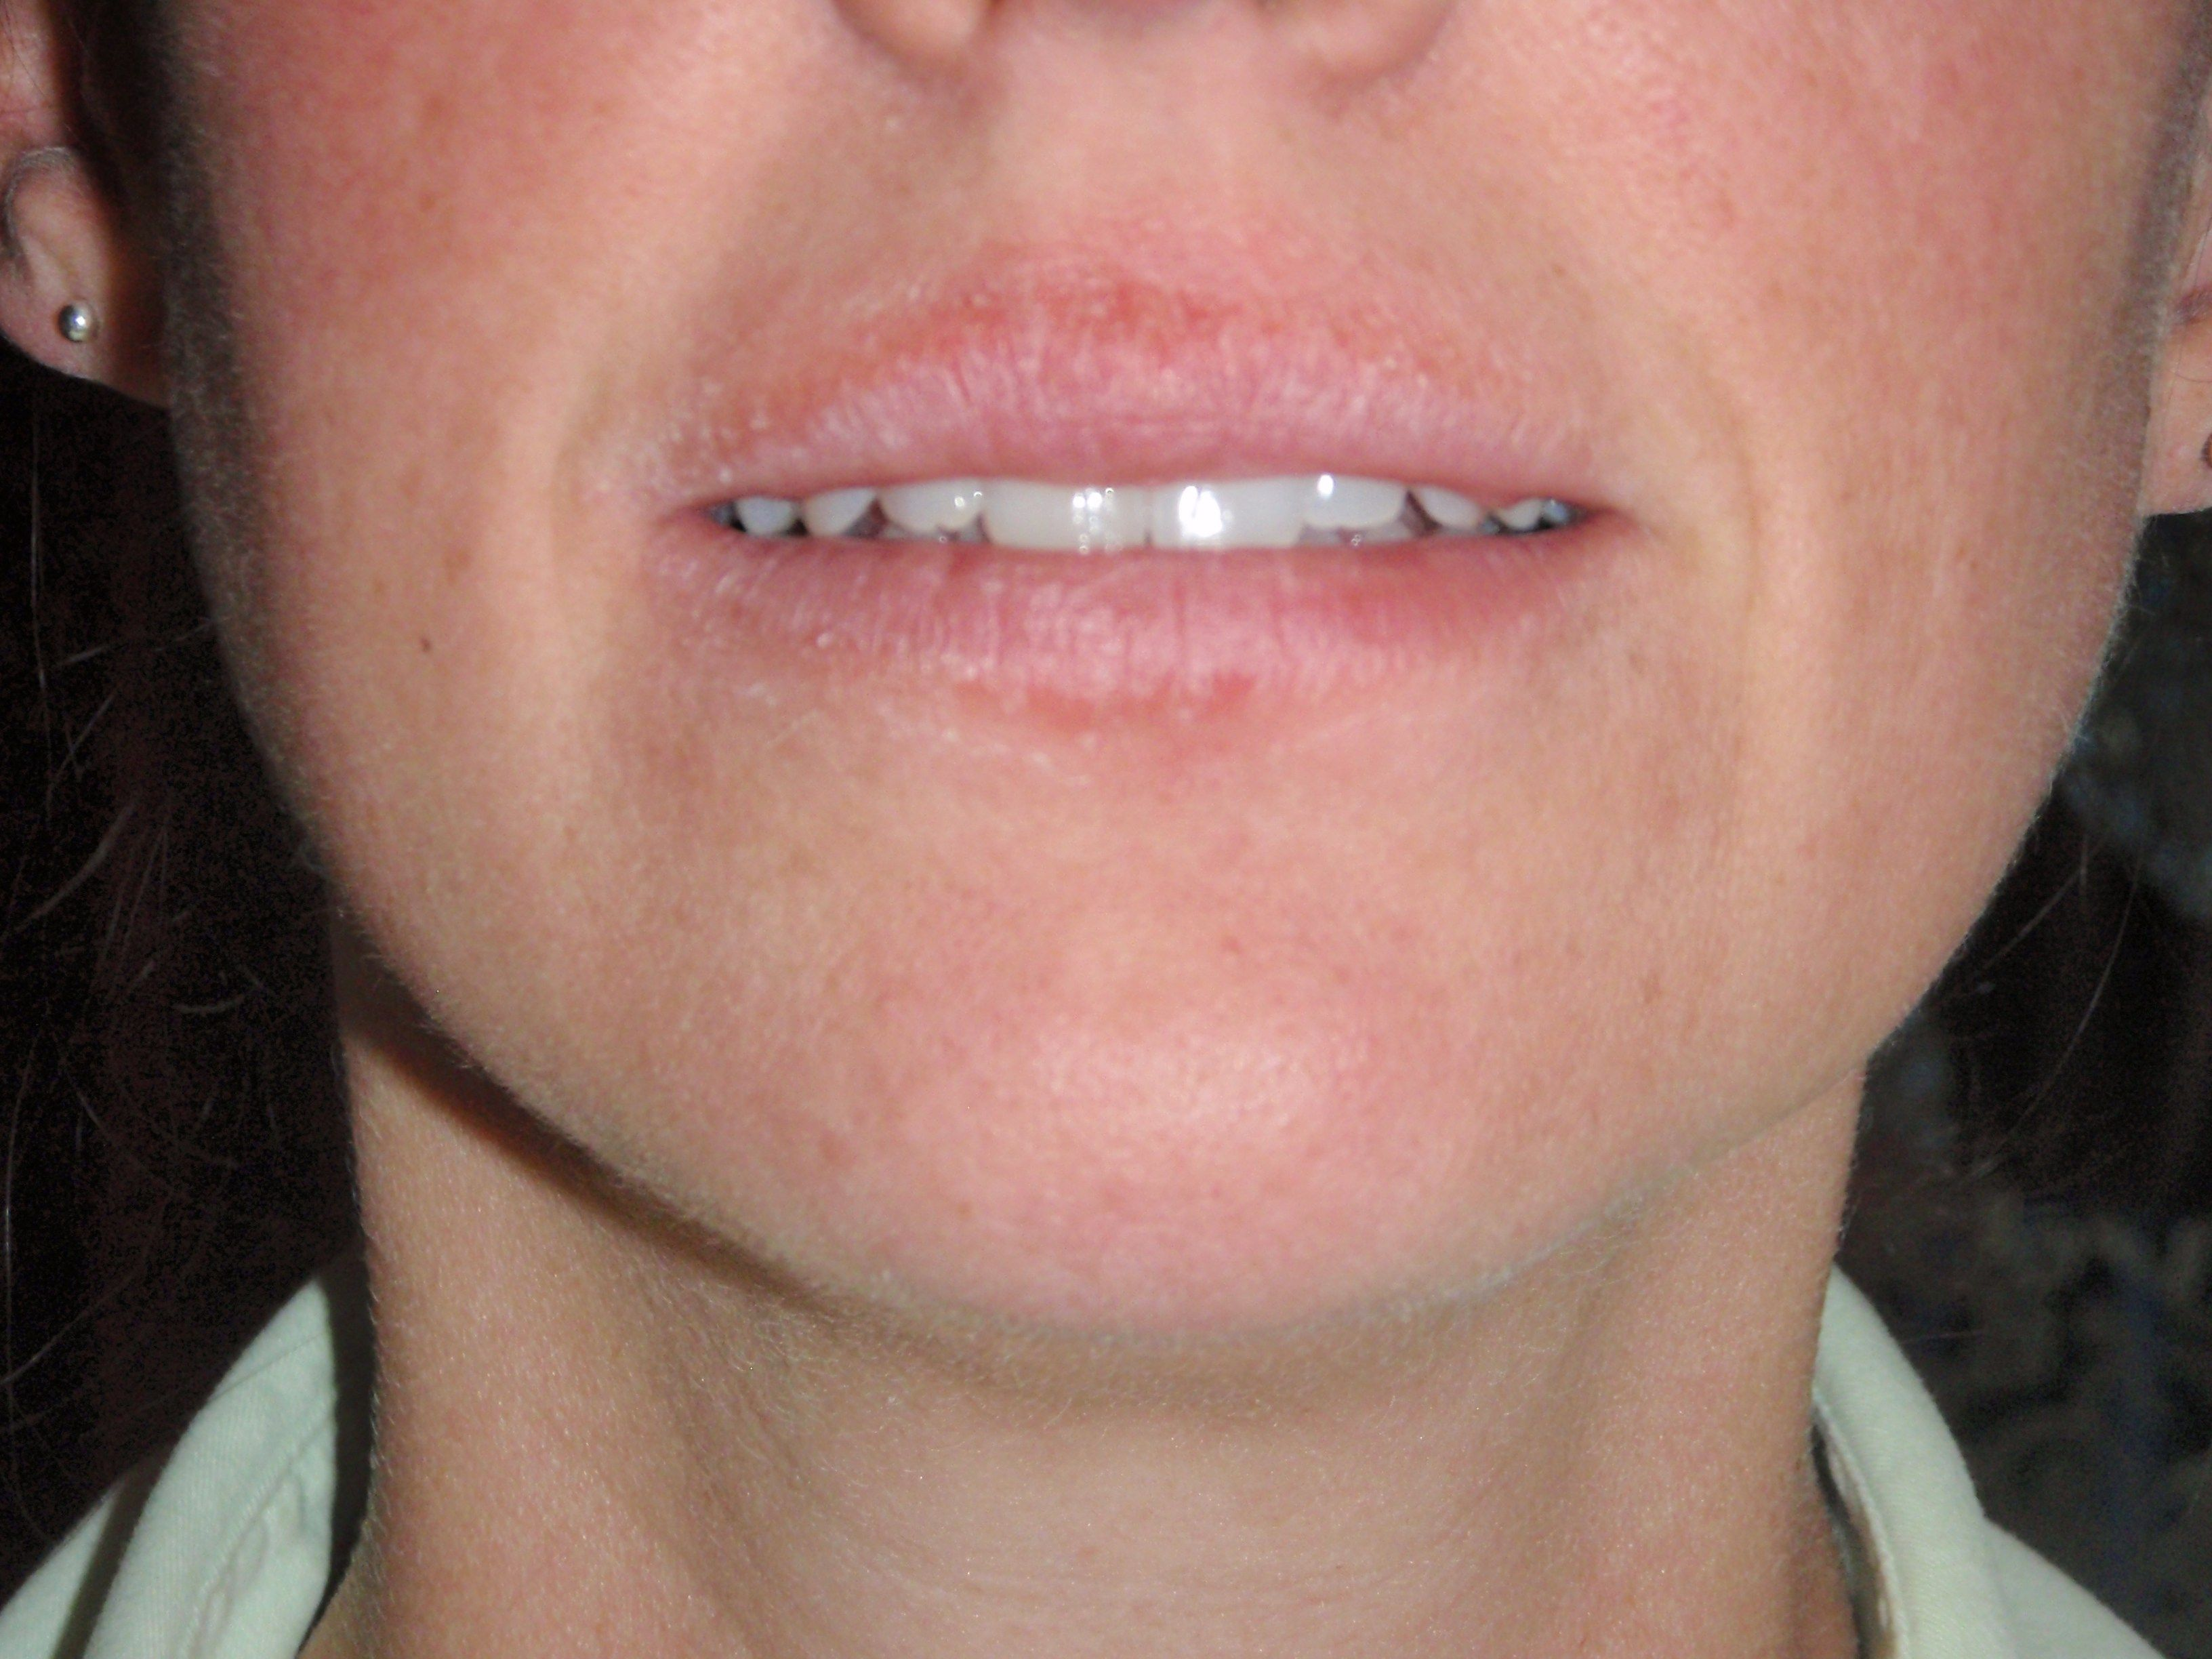 Flaking and peeling of skin around mouth on Day 2 of the rash | Skin ...